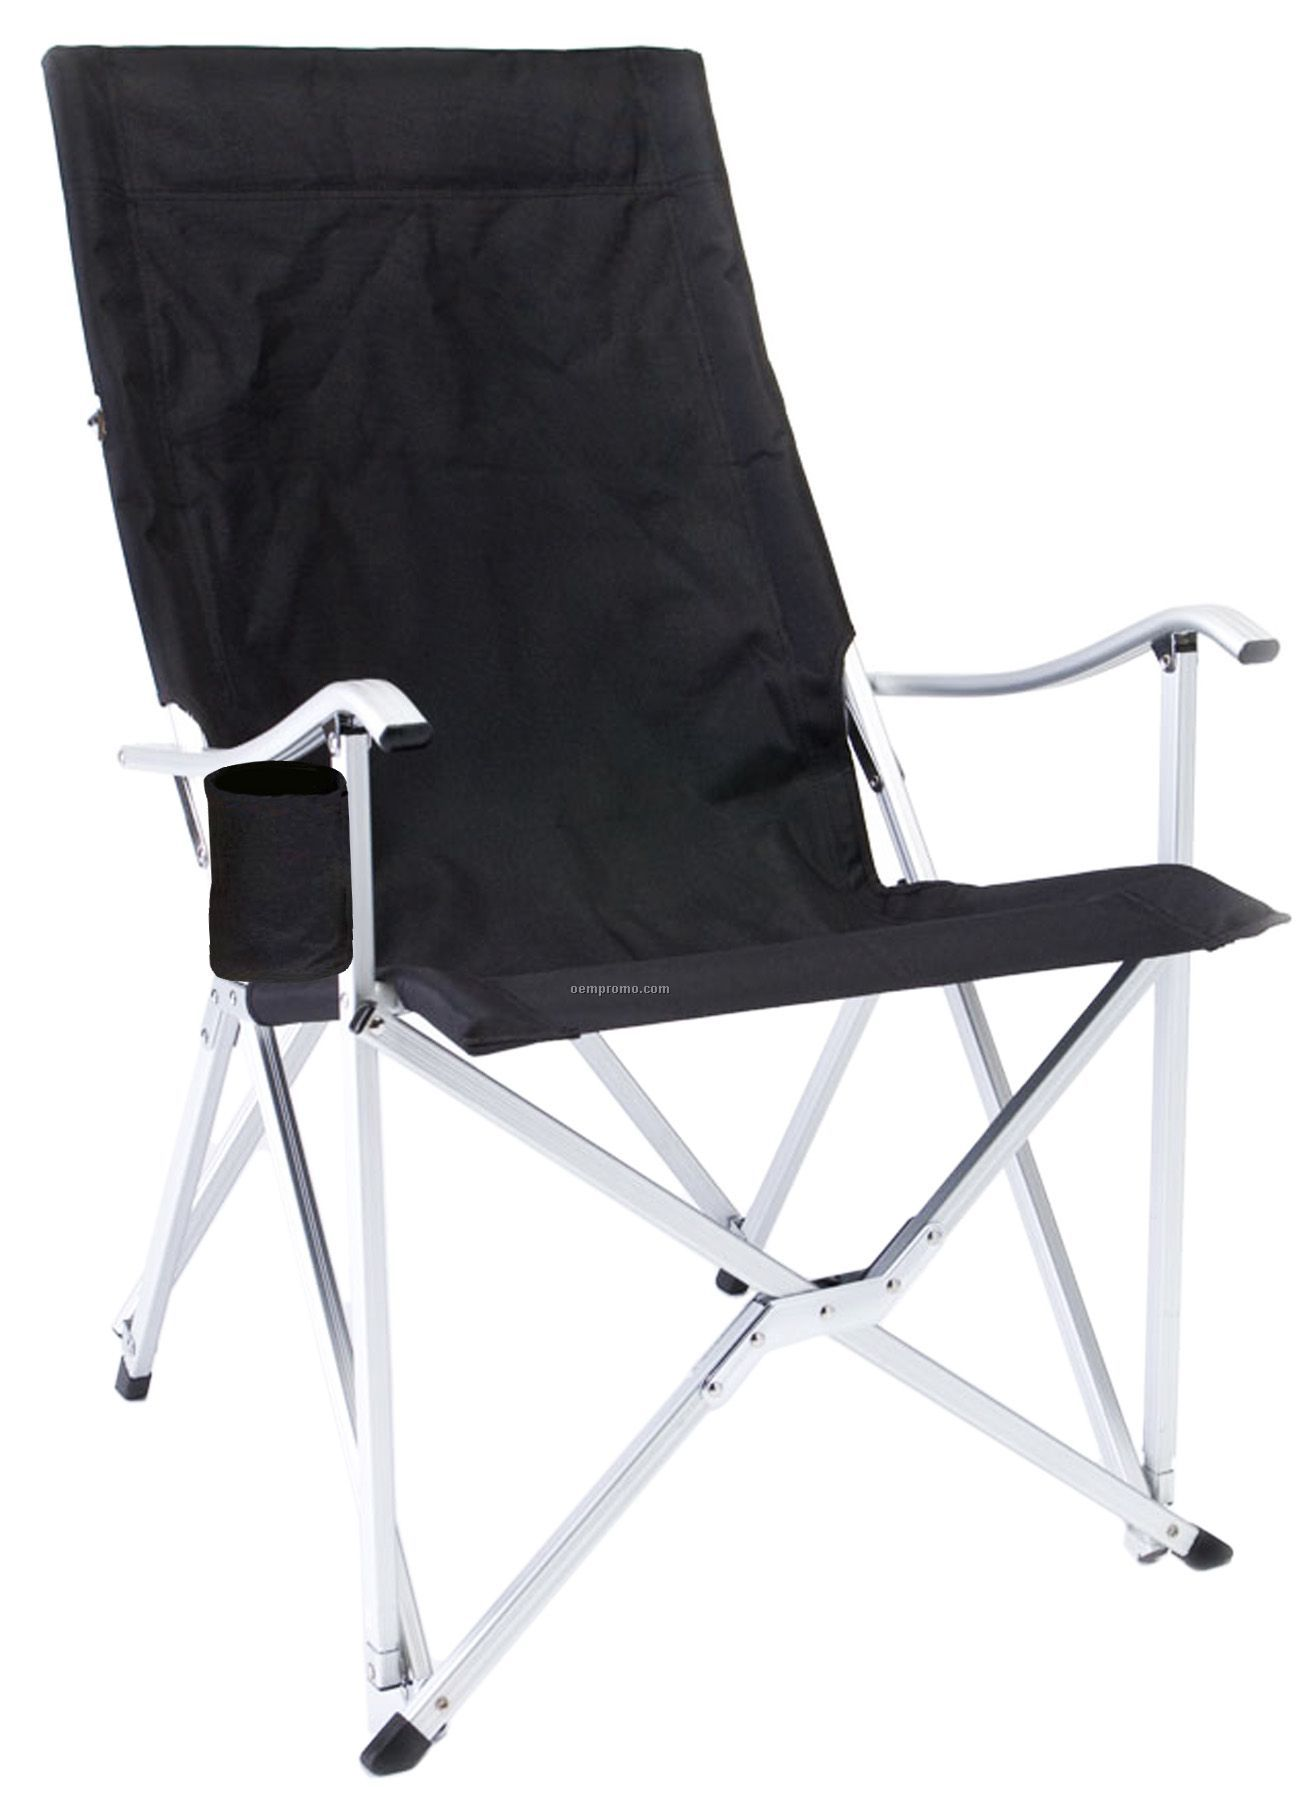 Folding Beach Chair With Carrying Bagchina Wholesale